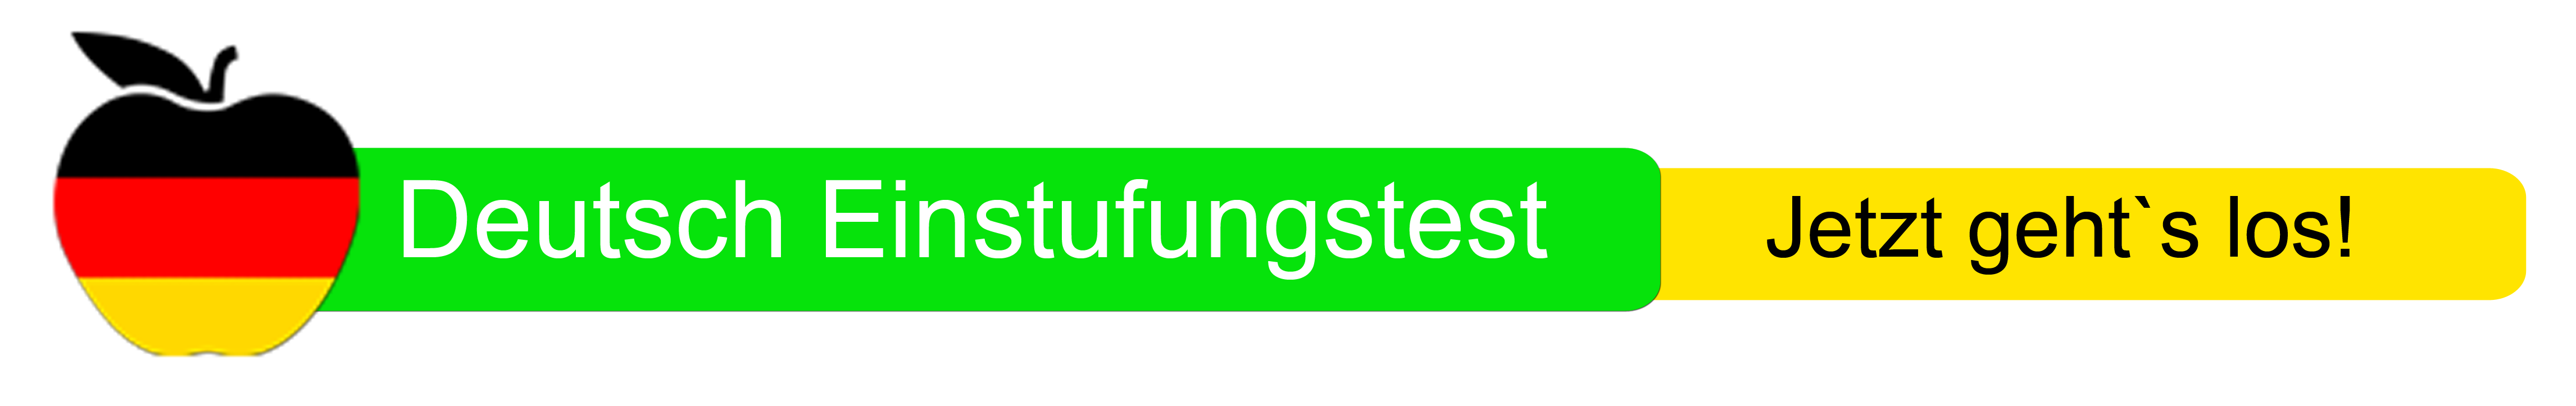 Deutsch-Einstufungstest-Freising